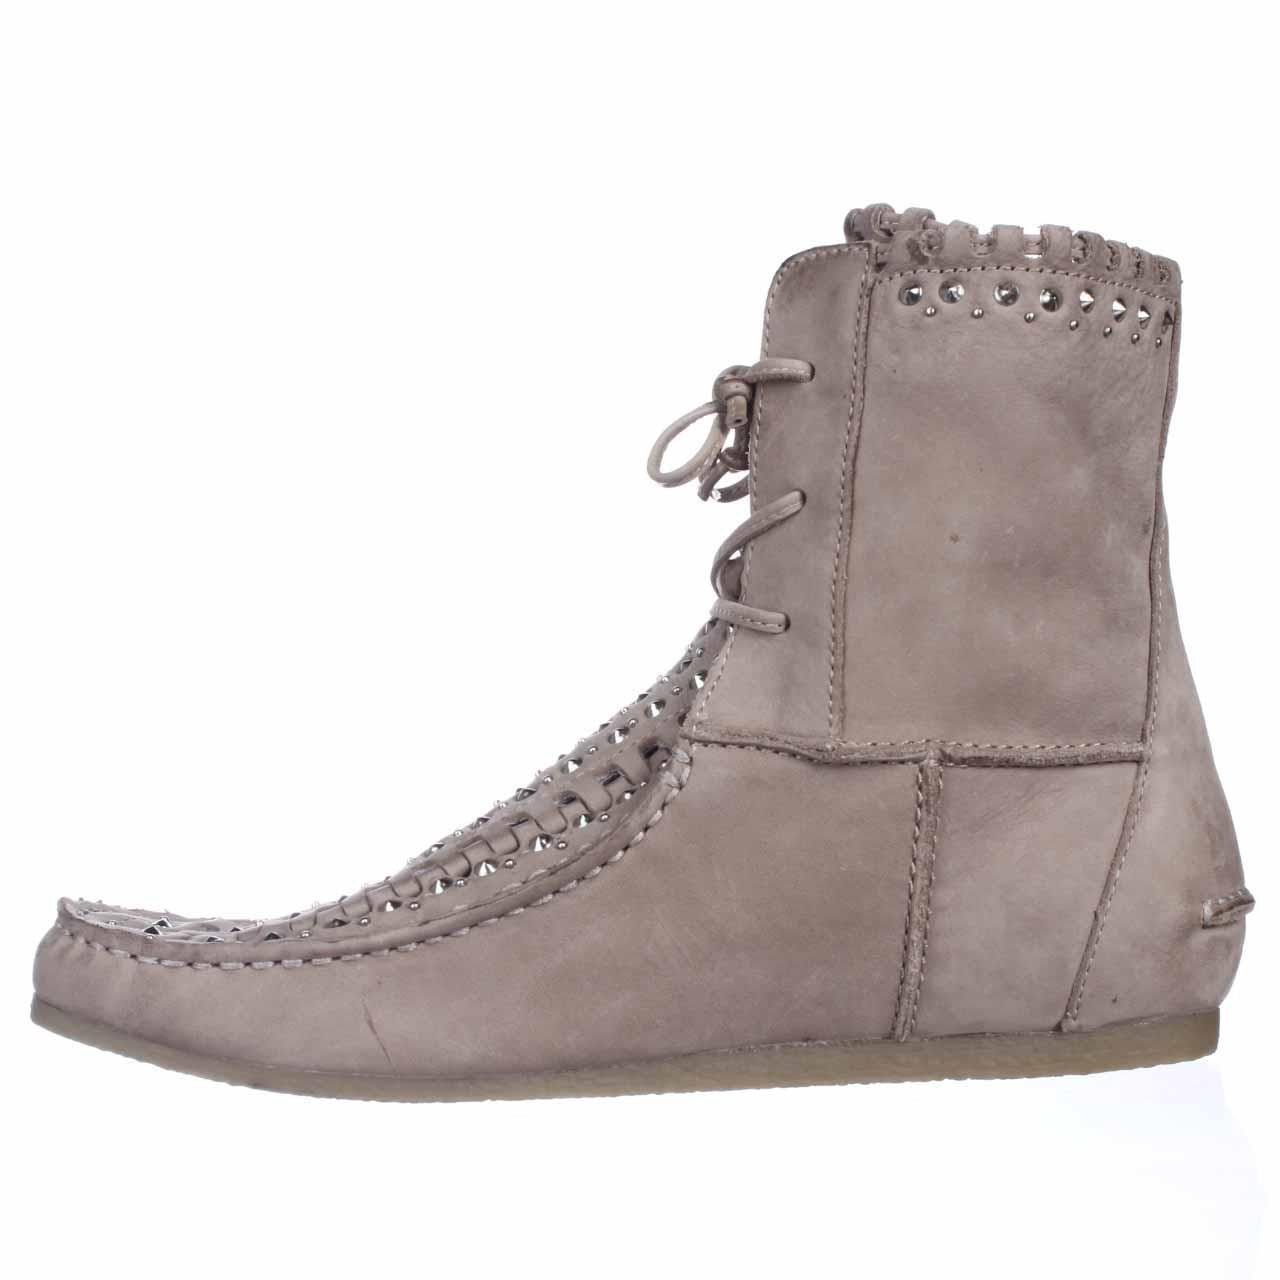 cf5246334 Sam Edelman Katelyn Studded Moccasin Boots in Natural - Lyst